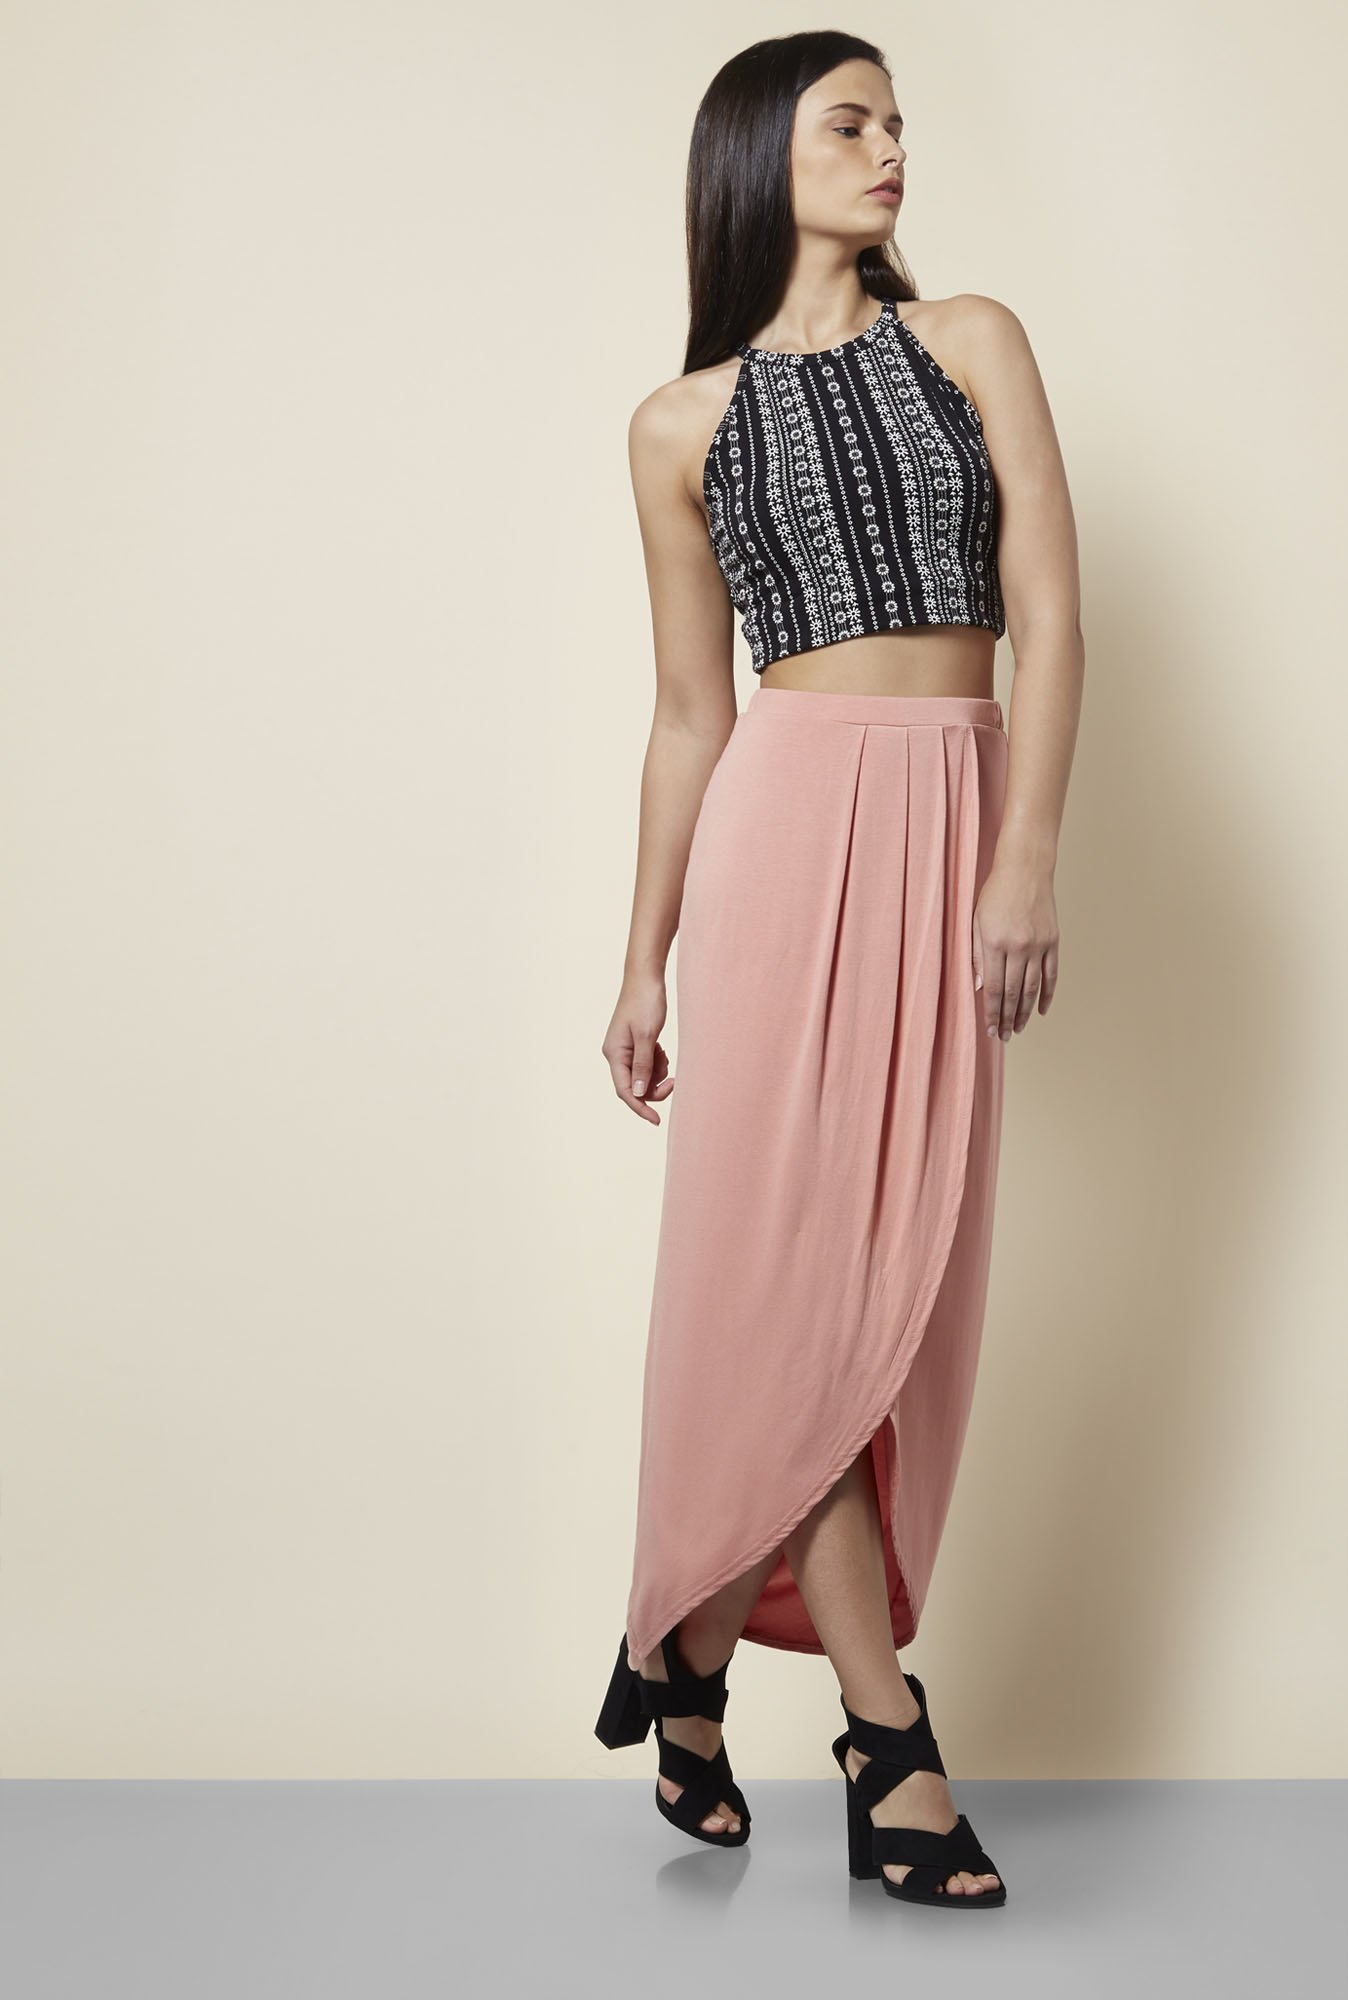 New Look Peach Skirt